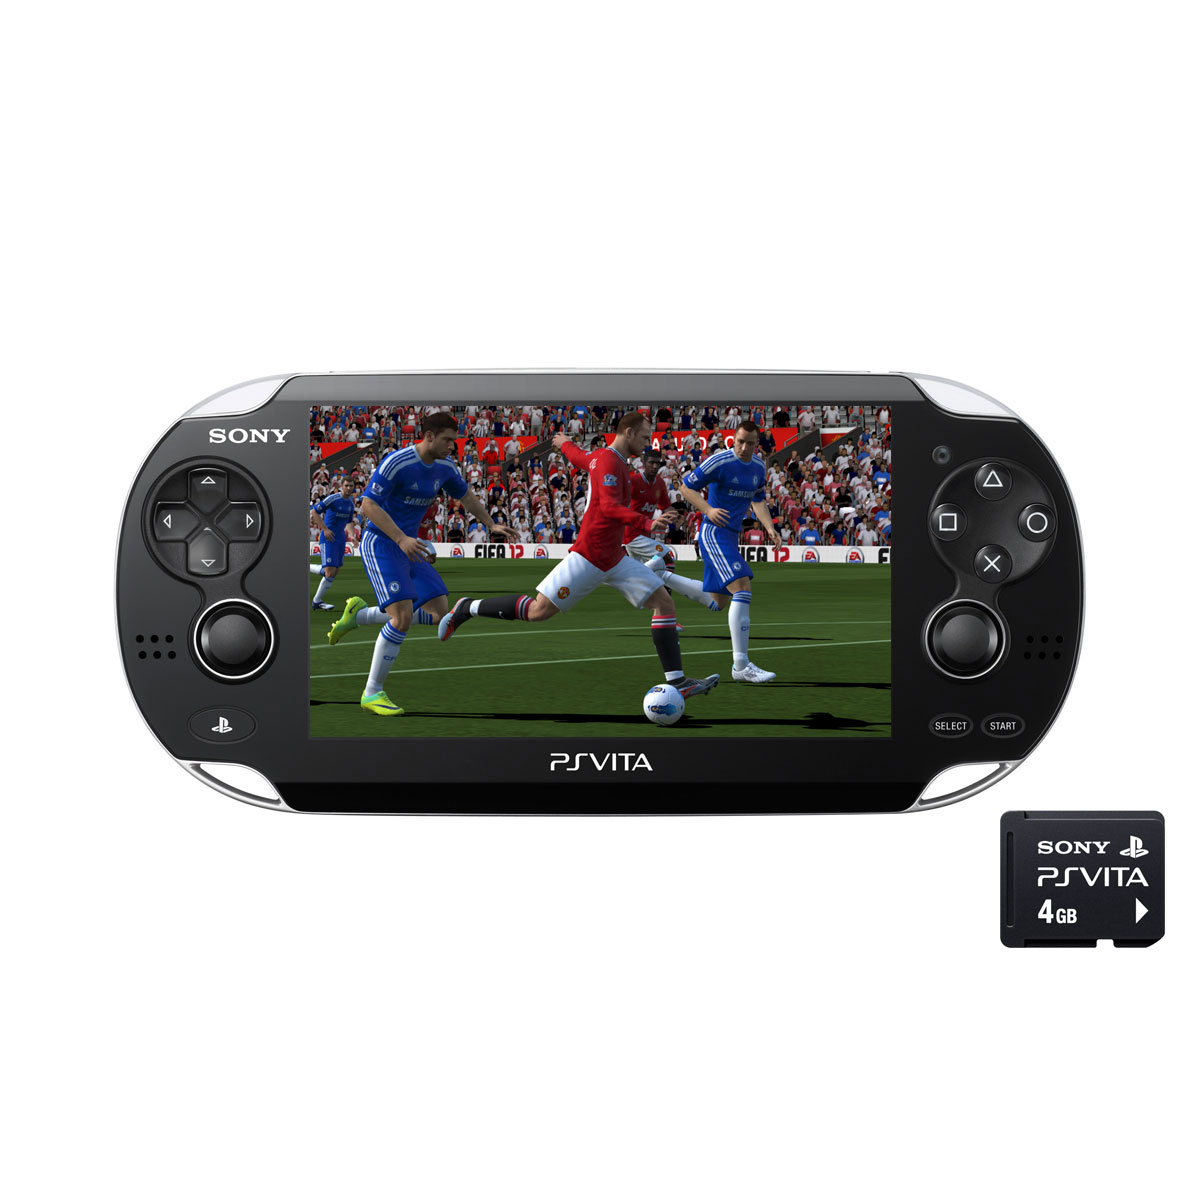 sony ps vita wifi noire fifa football carte m moire 4 go sm01396 achat vente. Black Bedroom Furniture Sets. Home Design Ideas